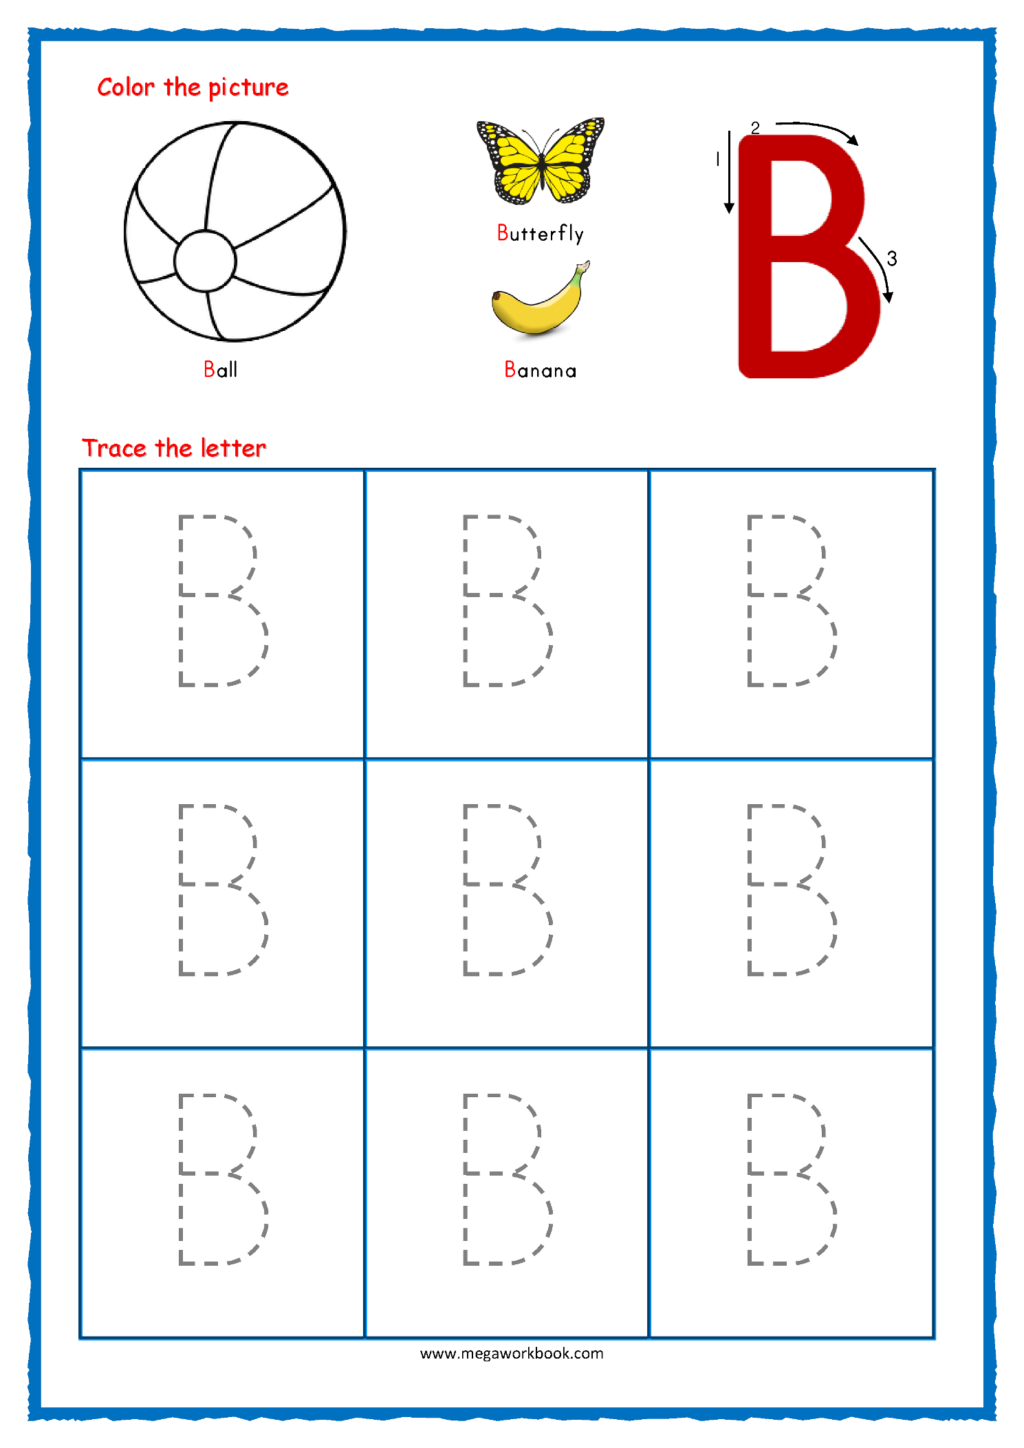 Worksheet ~ Free Letter Tracing Sheets For Kids Worksheets intended for Letter Tracing Youtube